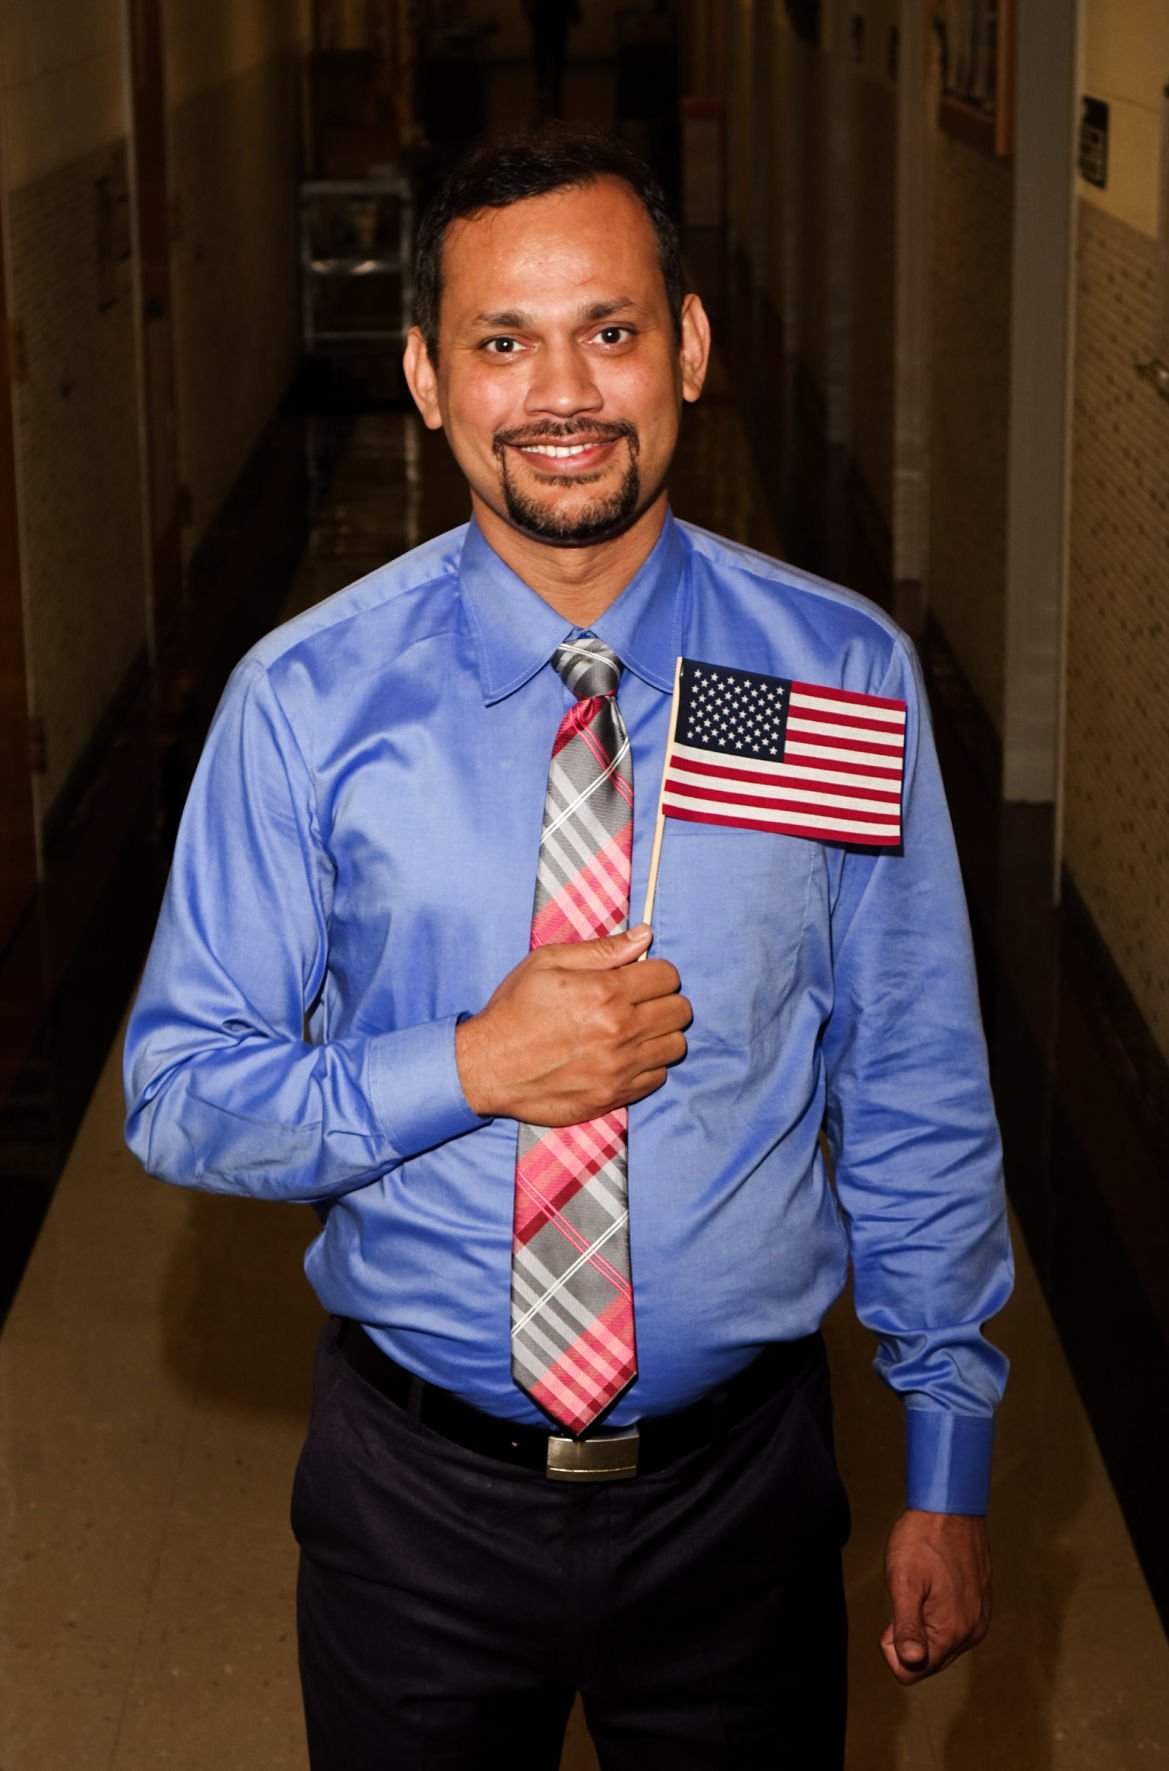 OSU professor to become US citizen in naturalization ceremony | News